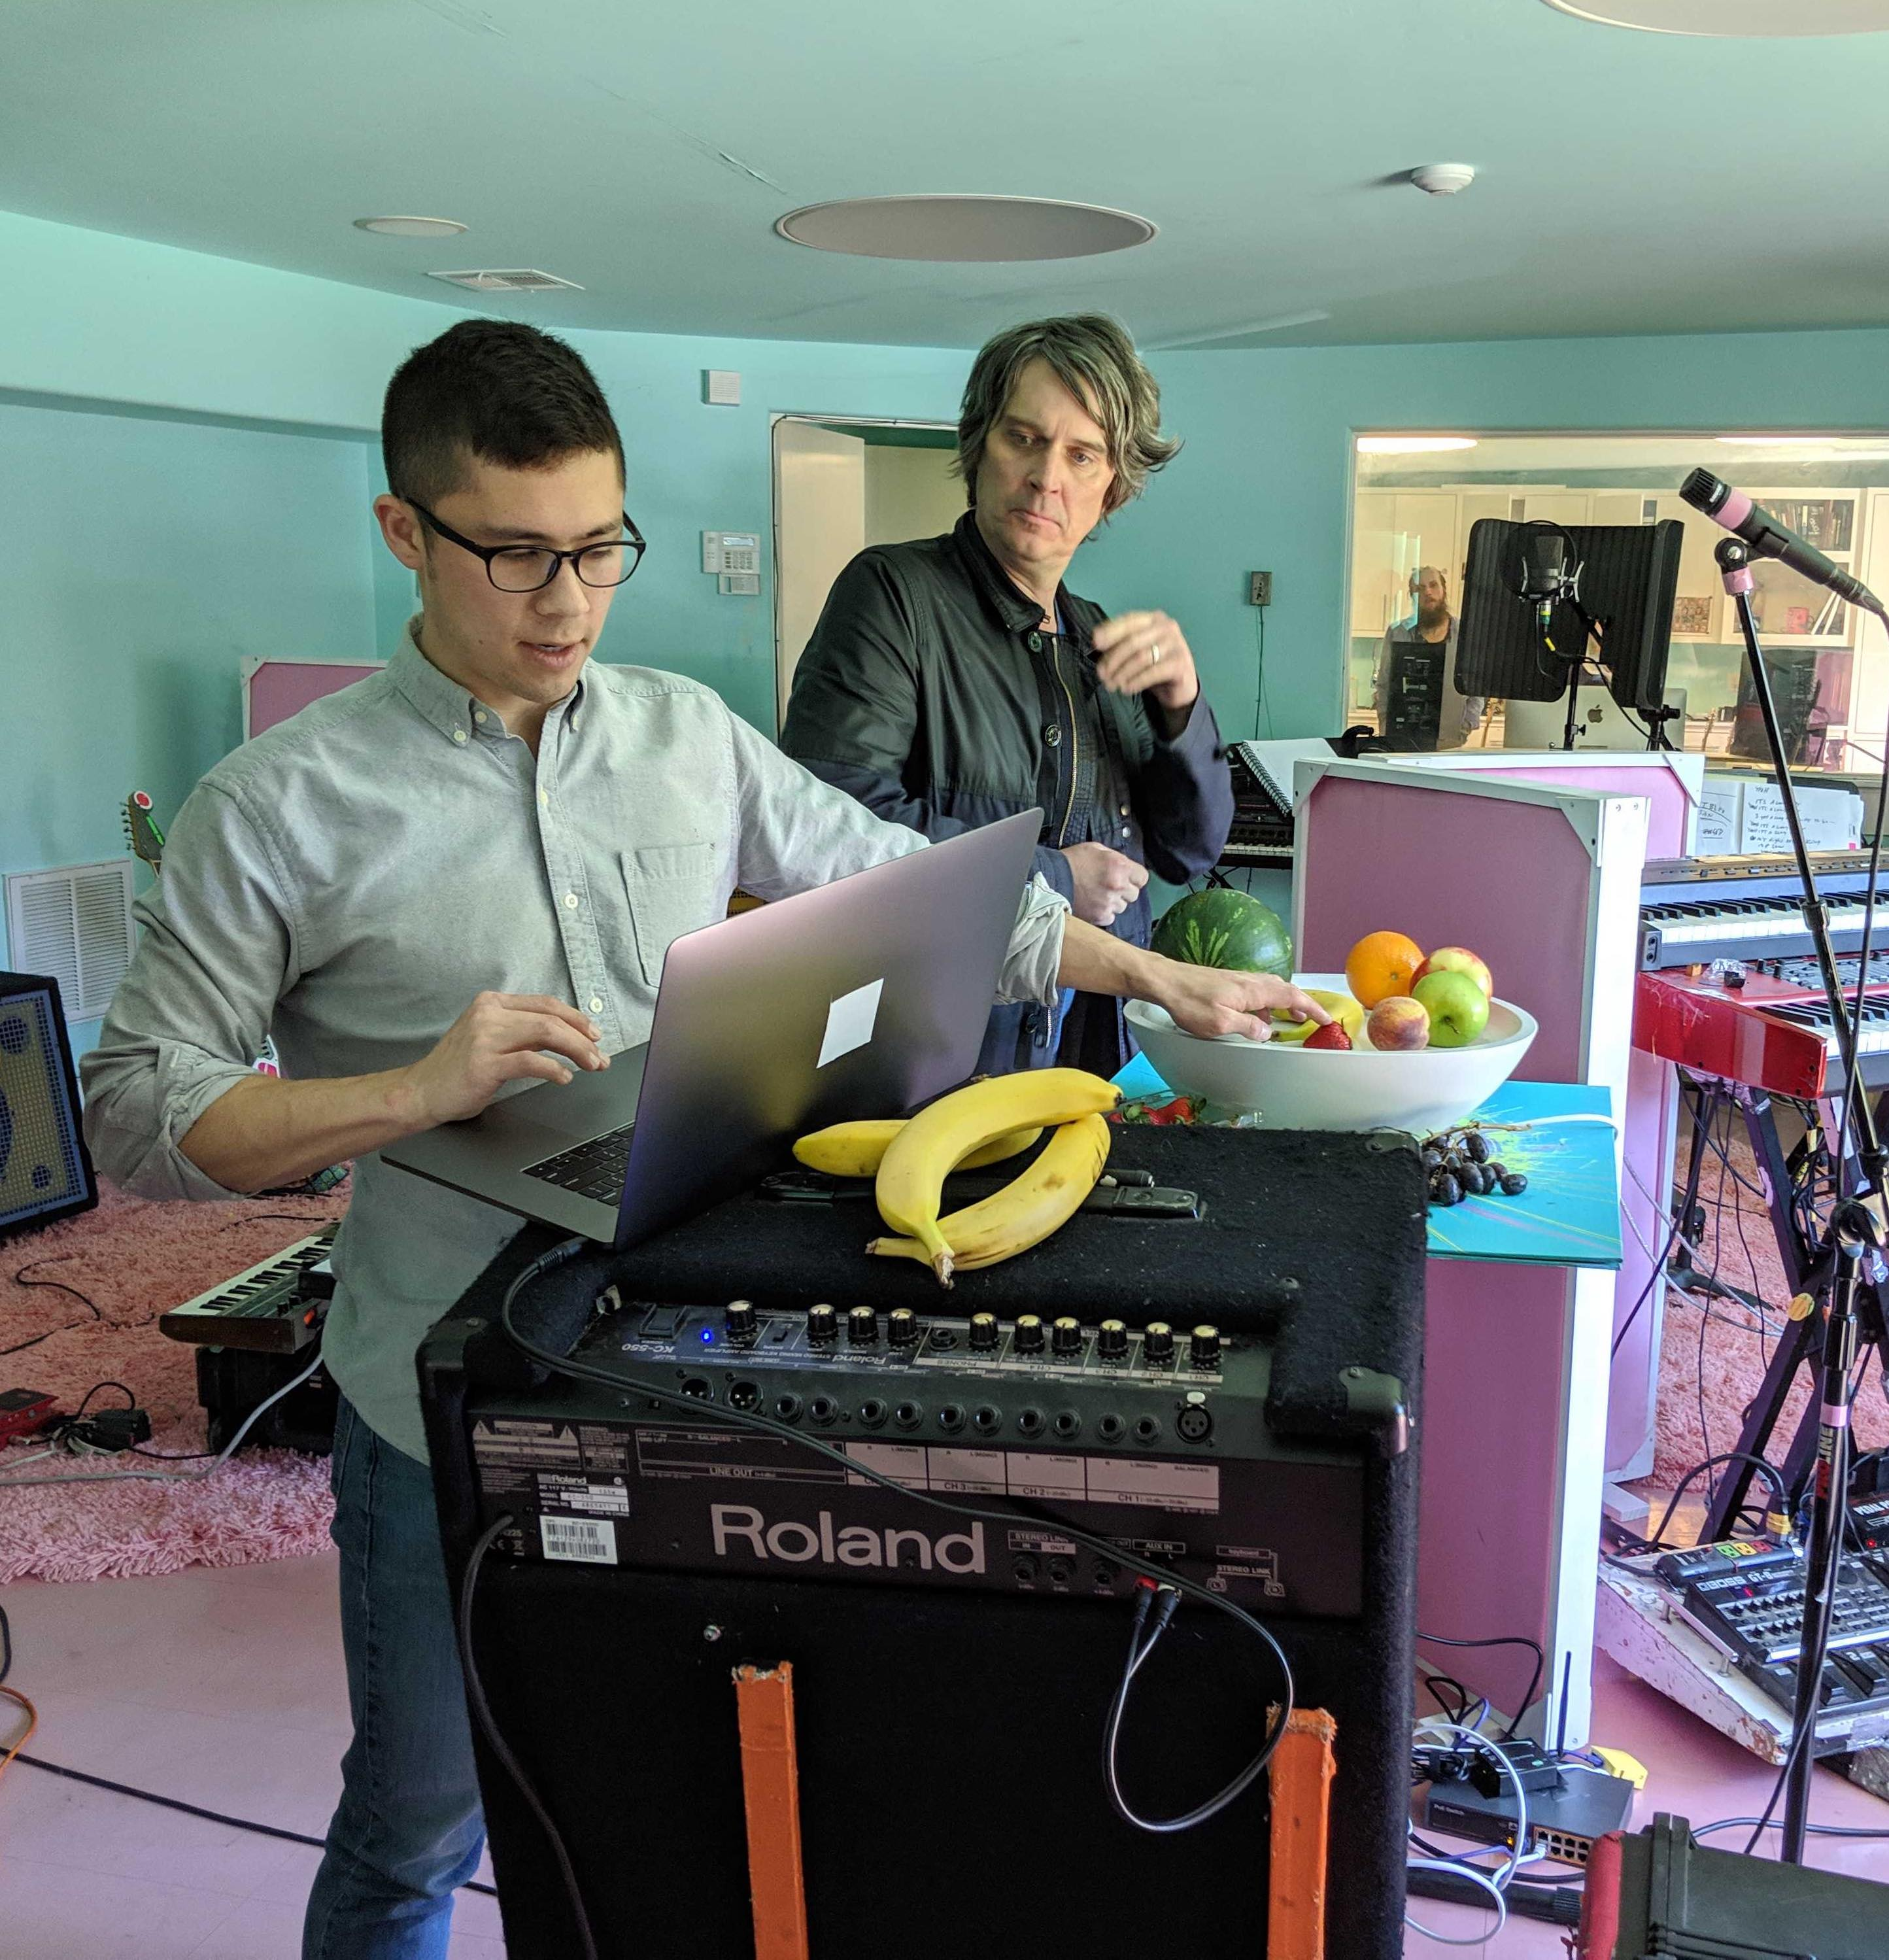 Mike Derrick (Deeplocal) tests the Fruit Genie with Steven Drozd (The Flaming Lips) during studio songwriting session.